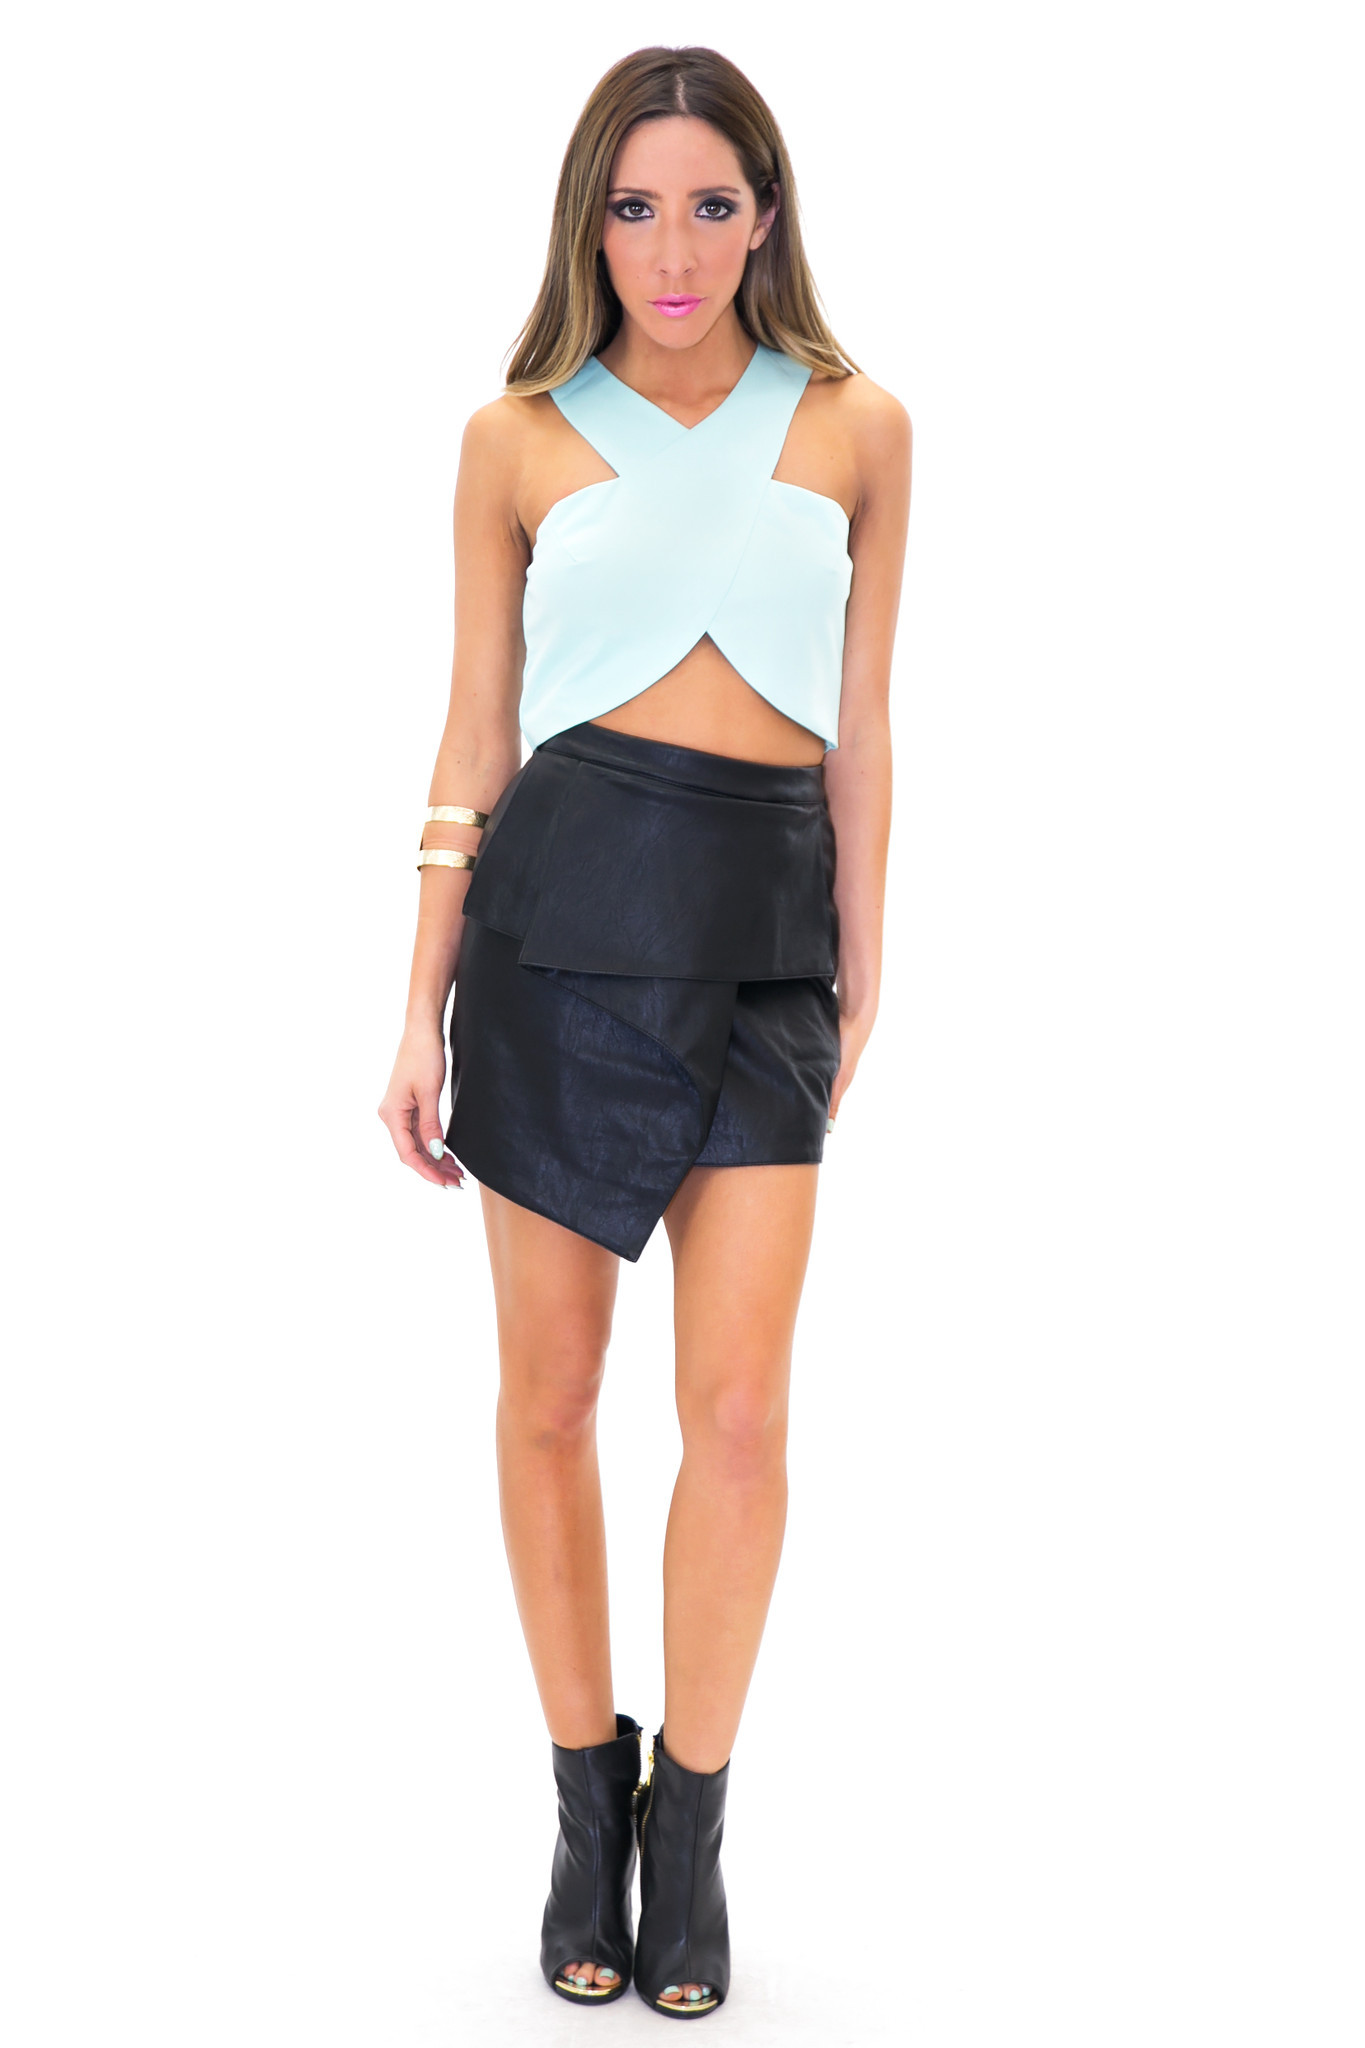 RECKER CROSS CROP TOP - Pistachio | Haute & Rebellious